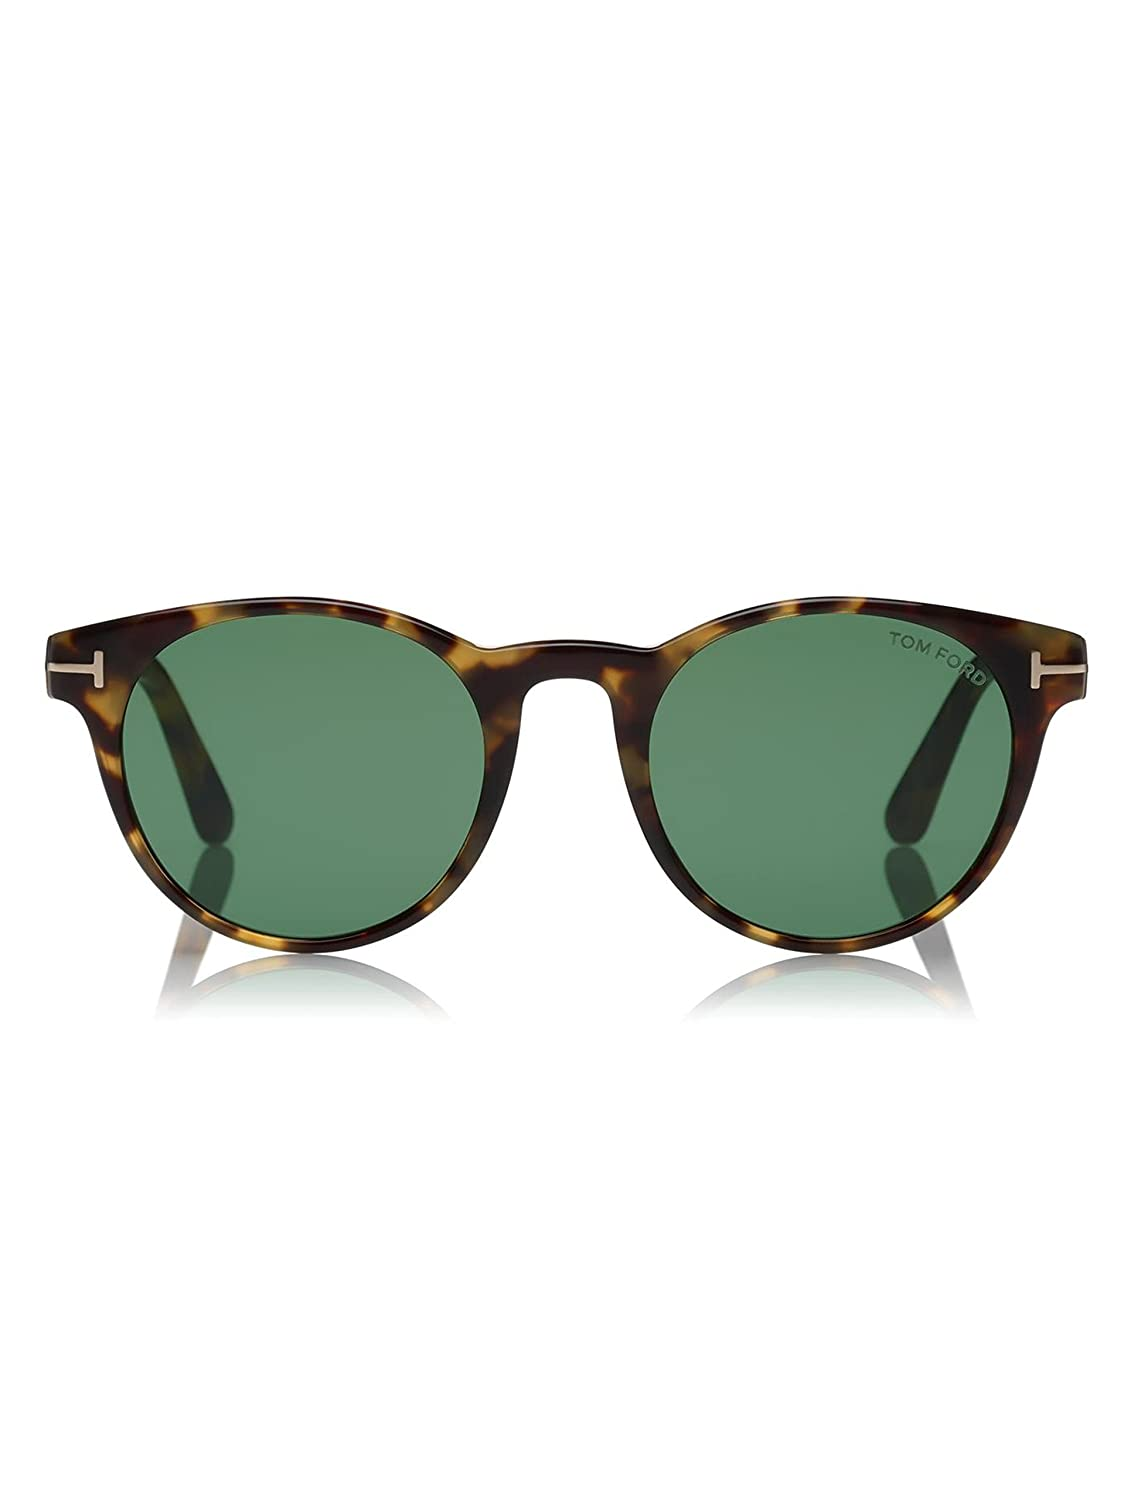 ed13647740a73a Sunglasses Tom Ford FT 0522 Palmer 56N havana other   green at Amazon Men s  Clothing store